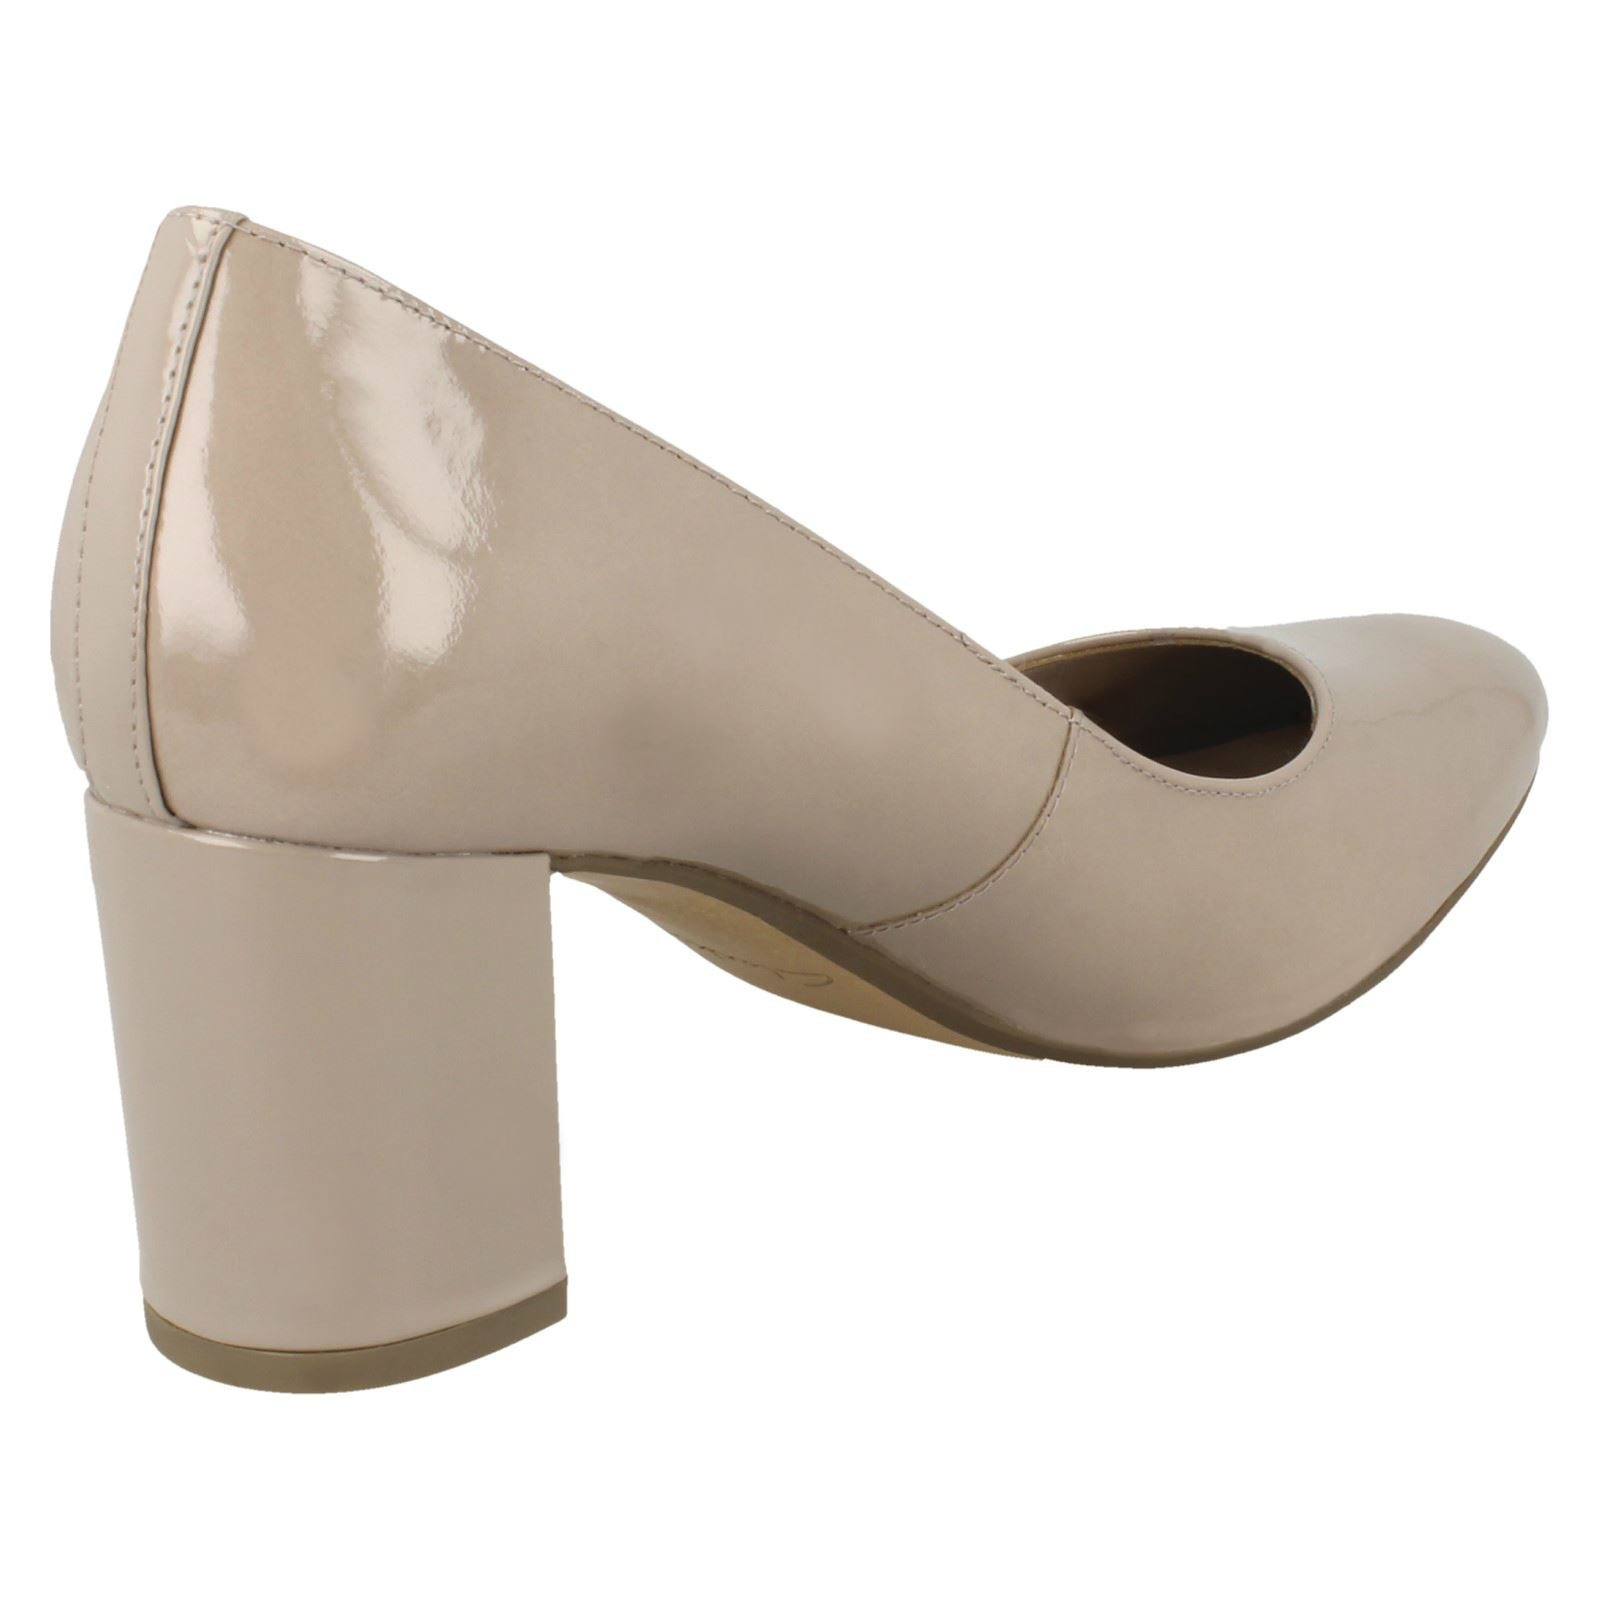 Blissful Cloud Ladies Clarks Smart Leather Court Shoes With Chunky Heel